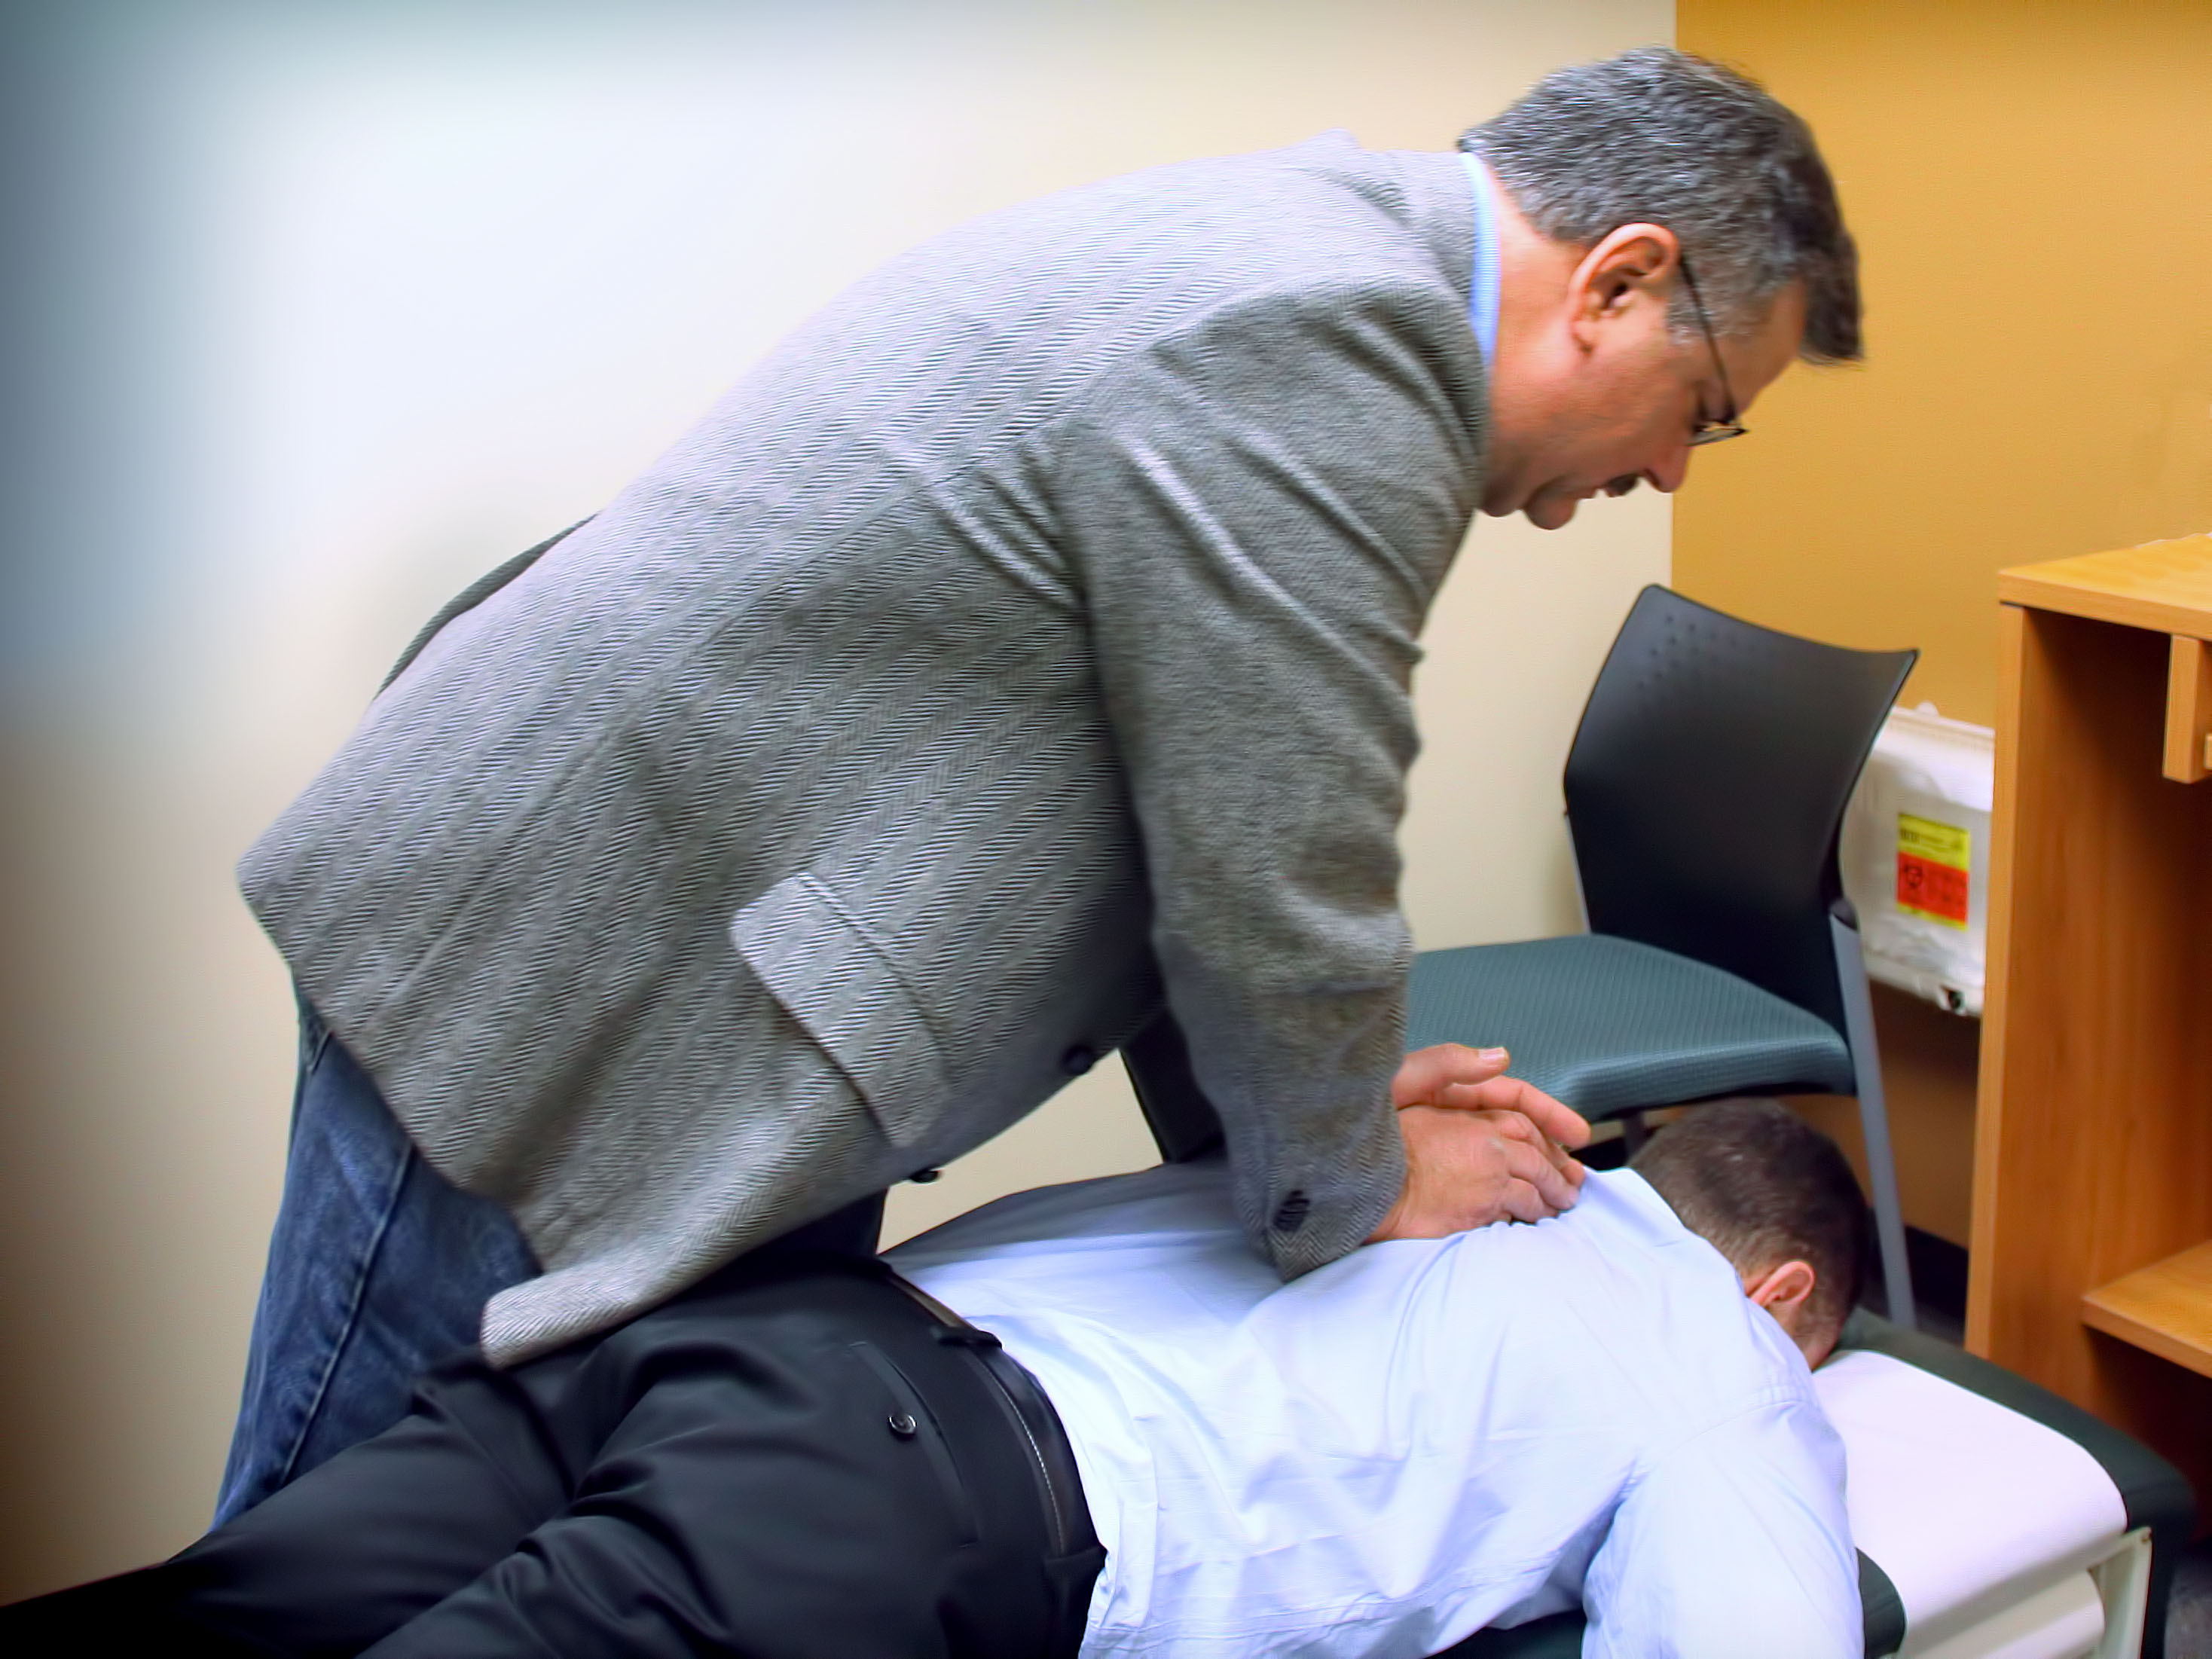 Chiropractic how to do research on a person